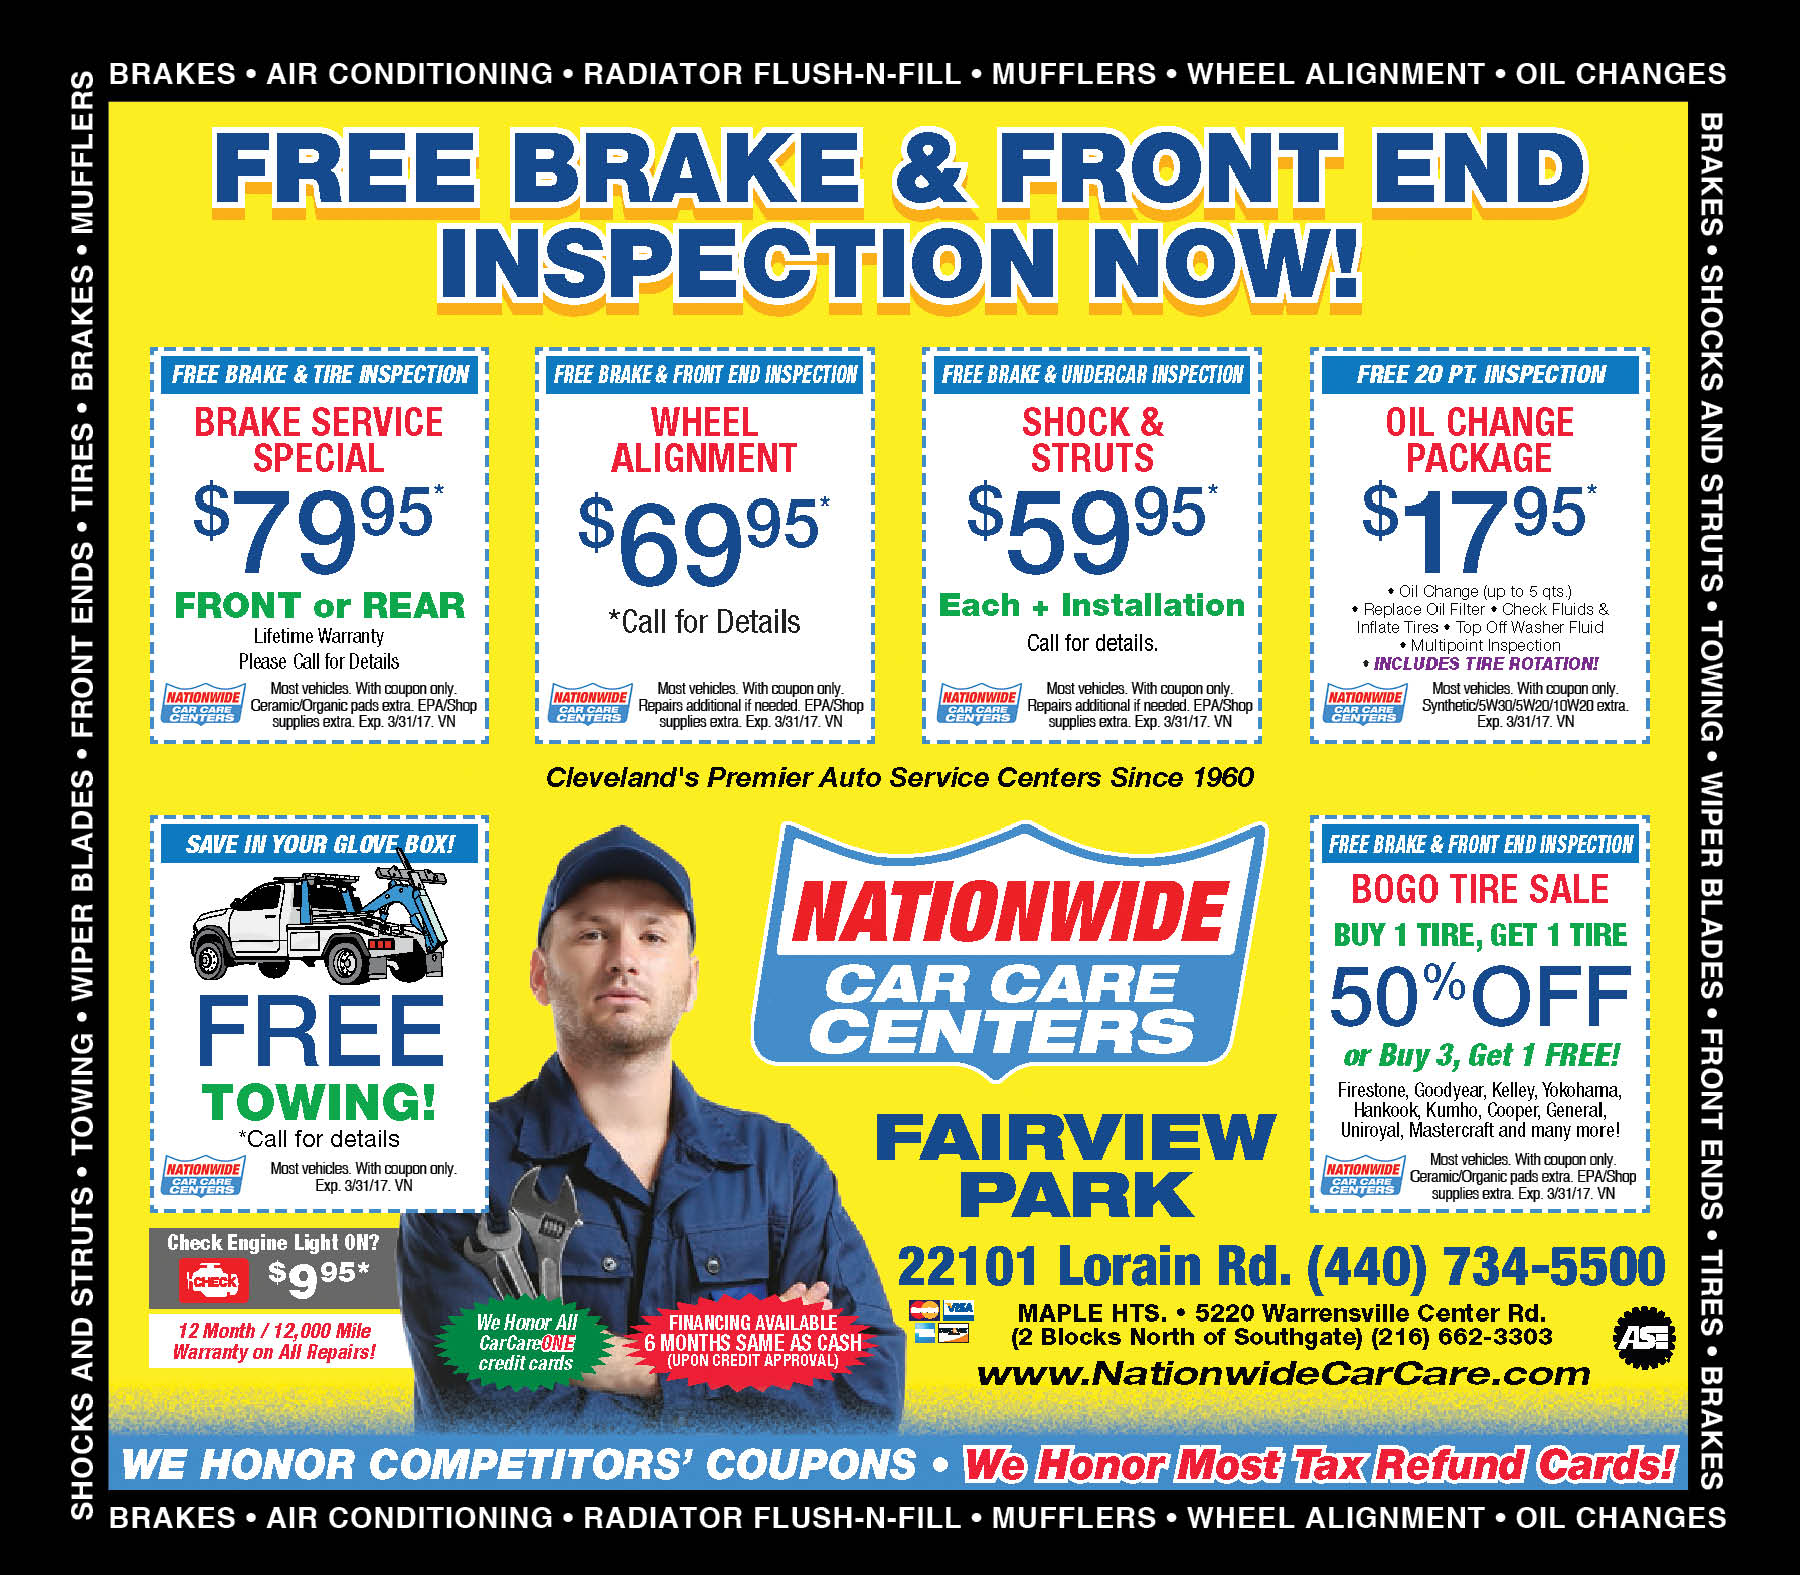 2-23-17 Nationwide Car Care